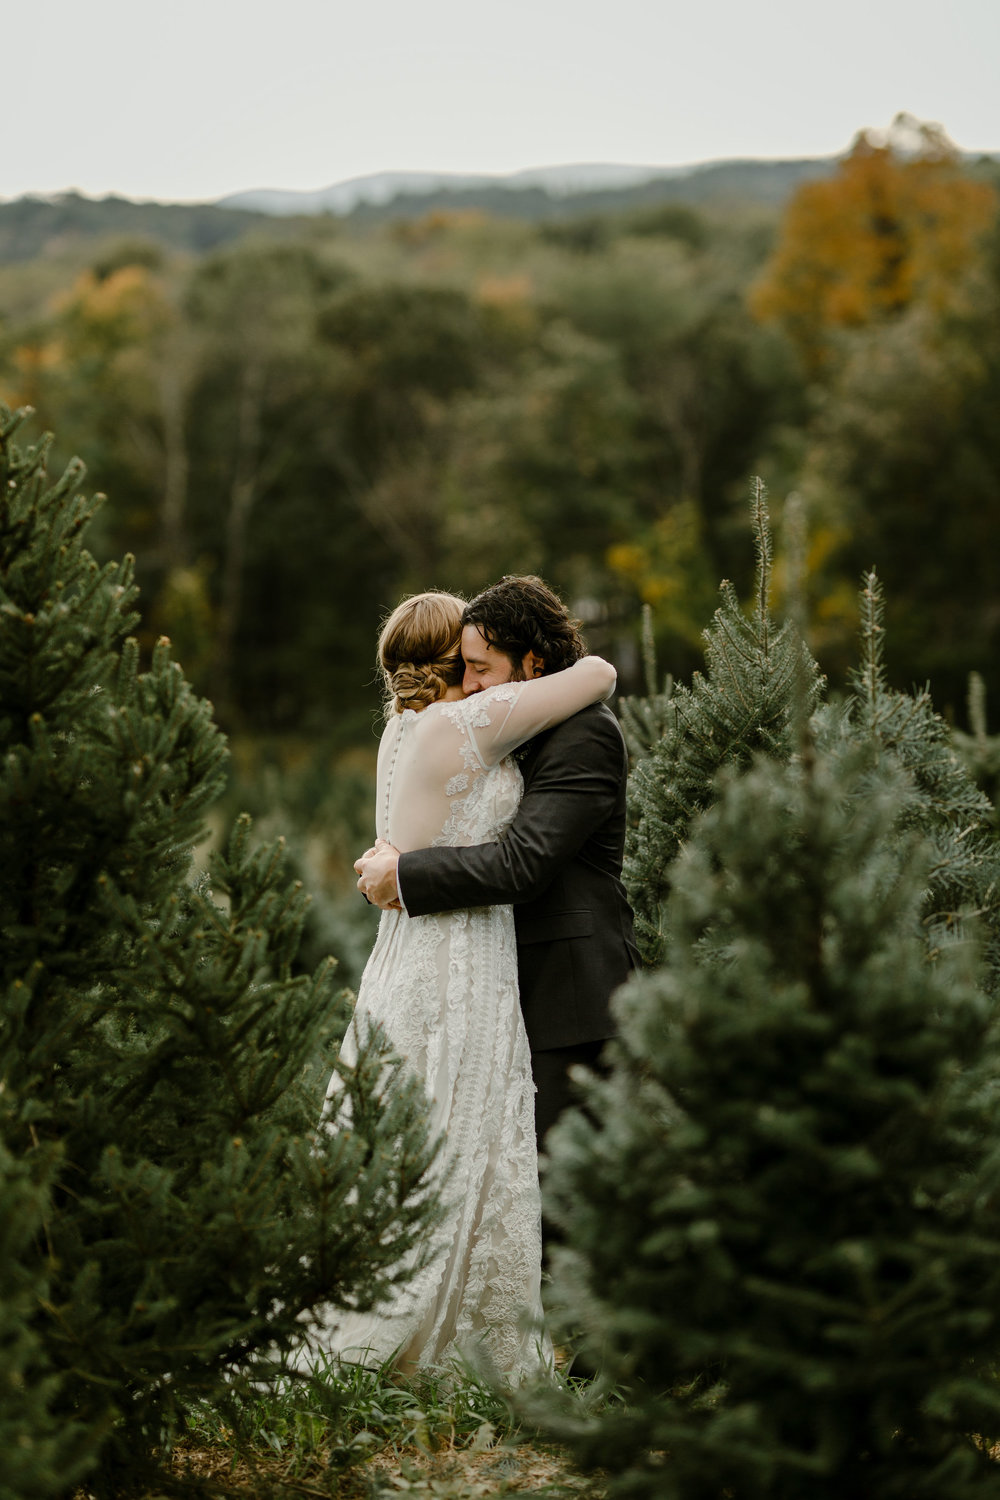 young-love-media-rustic-fall-autumn-wedding-emmerich-tree-farm-hudson-valley-warwick-new-york-first-look-28.jpg